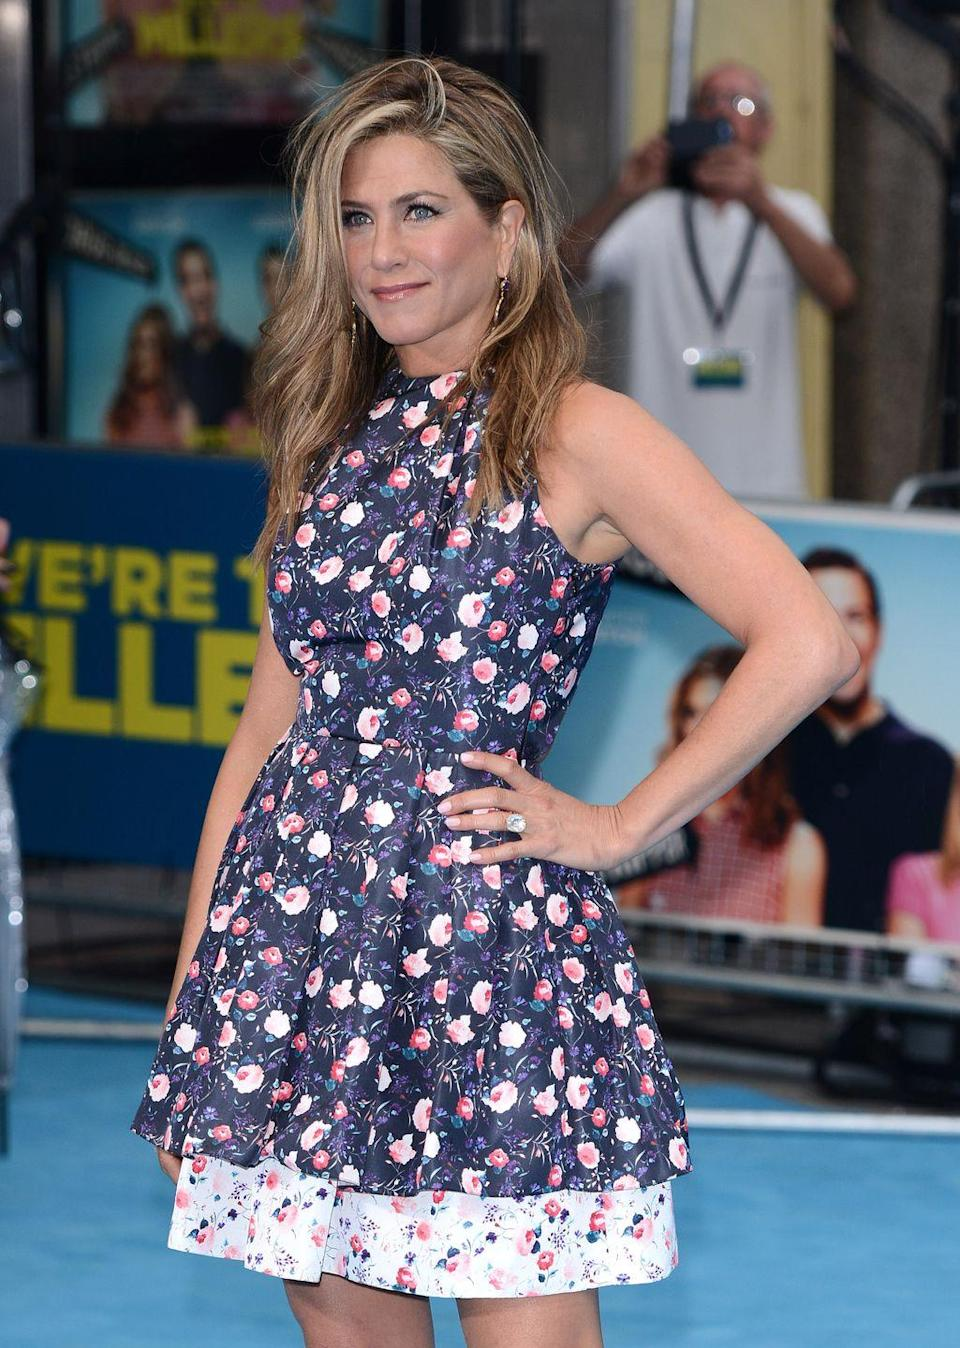 "<p>Jennifer is all about hanging out outside, but she wears sunscreen. ""I still sit in the sun...you need that vitamin D for a glow and your mood,"" Jennifer told <em><a href=""https://www.vogue.com/article/jennifer-aniston-skincare-routine-the-morning-show"" rel=""nofollow noopener"" target=""_blank"" data-ylk=""slk:Vogue"" class=""link rapid-noclick-resp"">Vogue</a></em>.</p>"